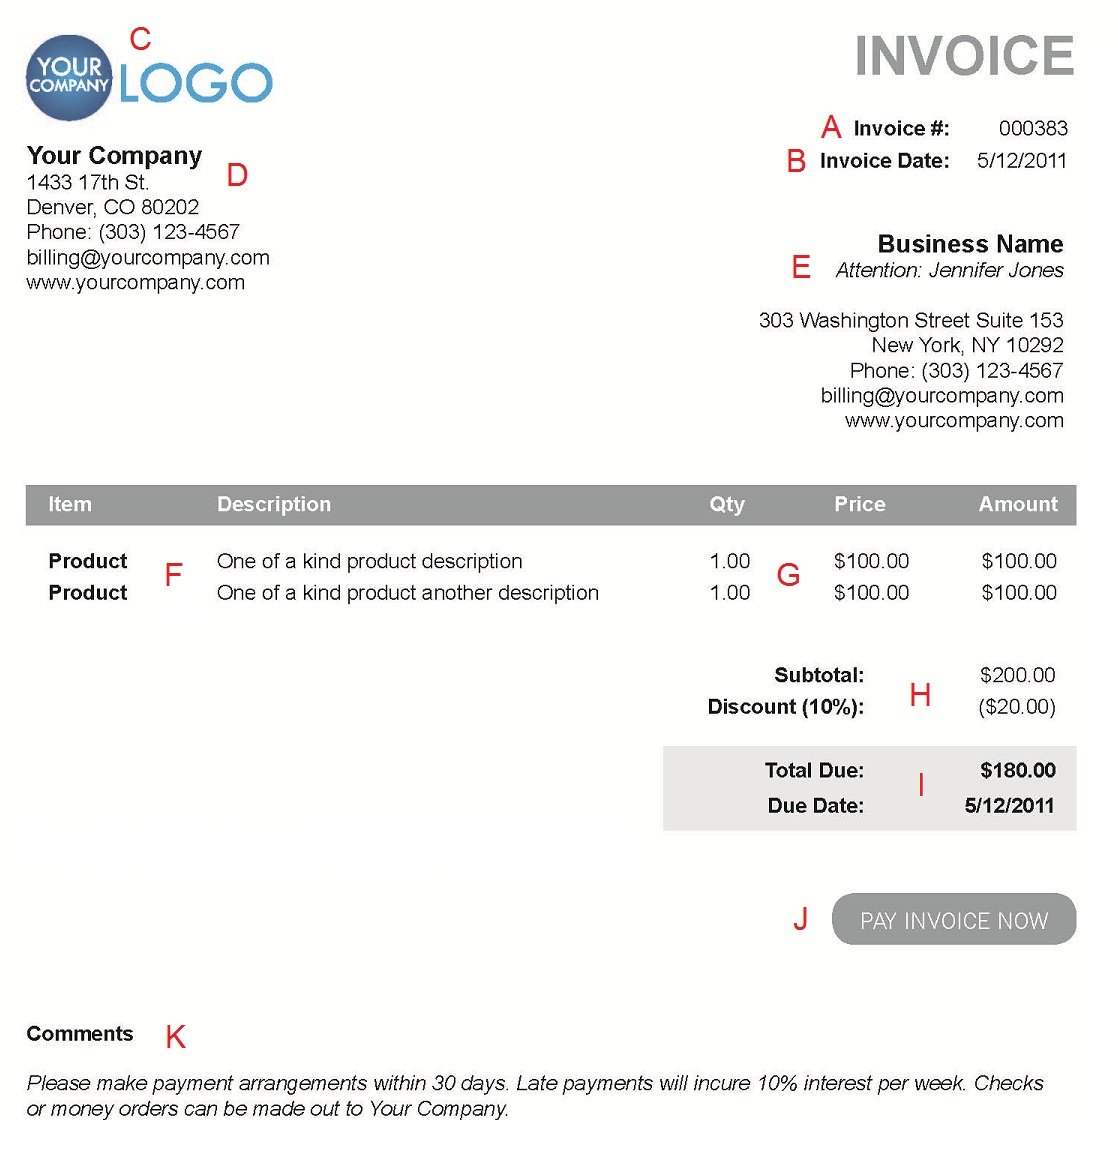 Occupyhistoryus  Marvellous The  Different Sections Of An Electronic Payment Invoice With Exquisite A  With Extraordinary Invoice What Is It Also Free Invoicing Tool In Addition Toyota Invoice Price Holdback And Payment By Invoice As Well As How To Get The Invoice Price Of A New Car Additionally Fob On An Invoice From Paysimplecom With Occupyhistoryus  Exquisite The  Different Sections Of An Electronic Payment Invoice With Extraordinary A  And Marvellous Invoice What Is It Also Free Invoicing Tool In Addition Toyota Invoice Price Holdback From Paysimplecom